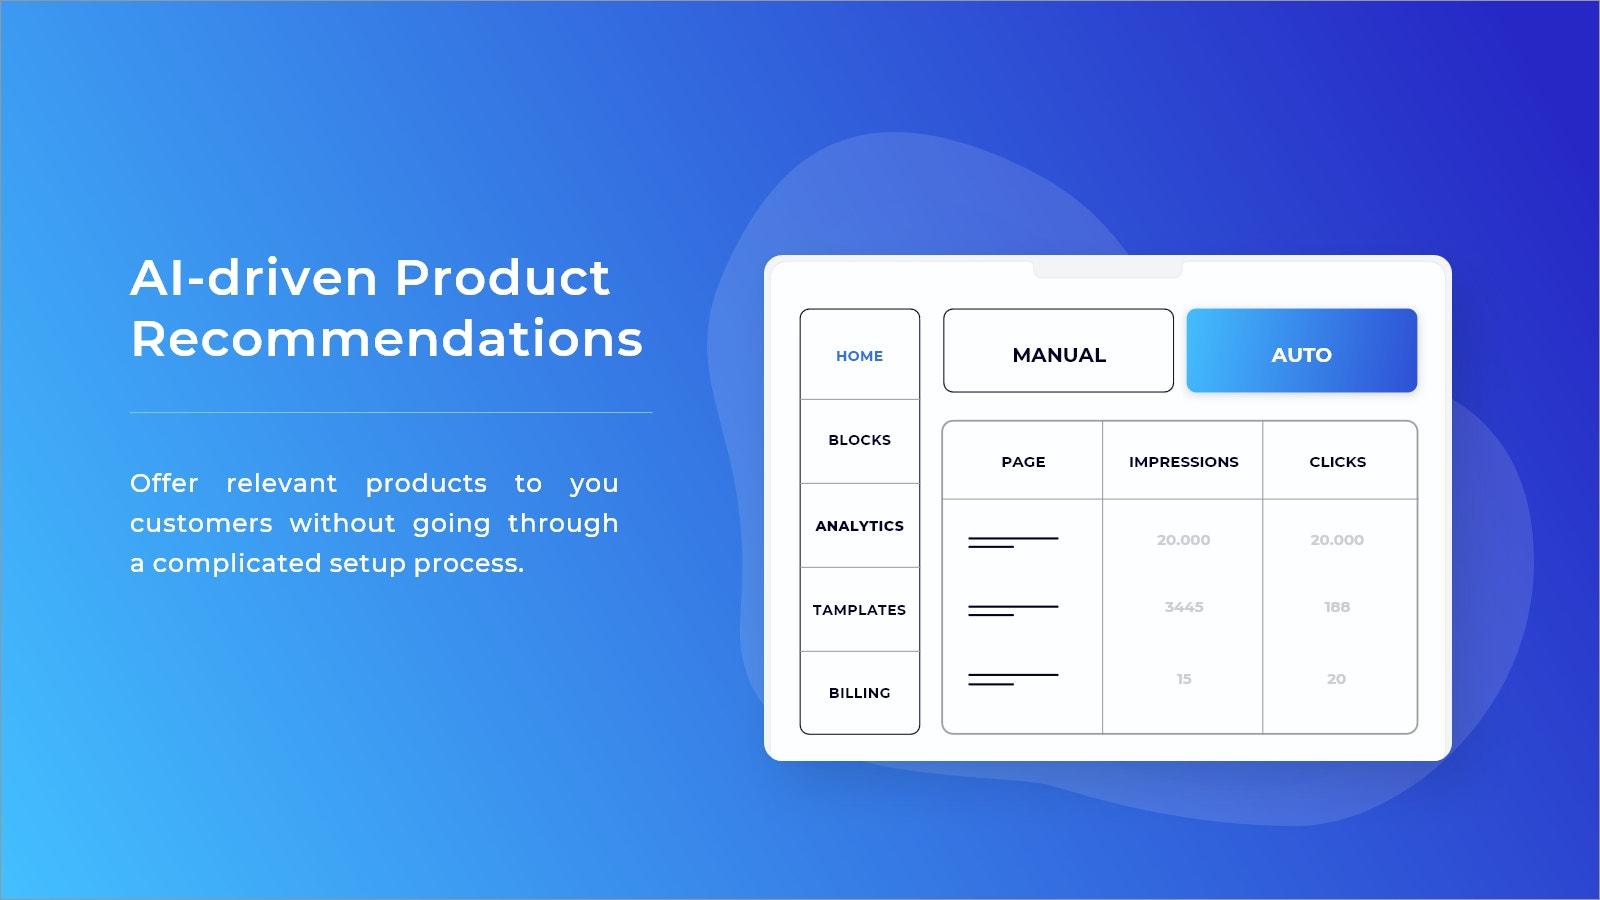 AI-driven Product Recommendations